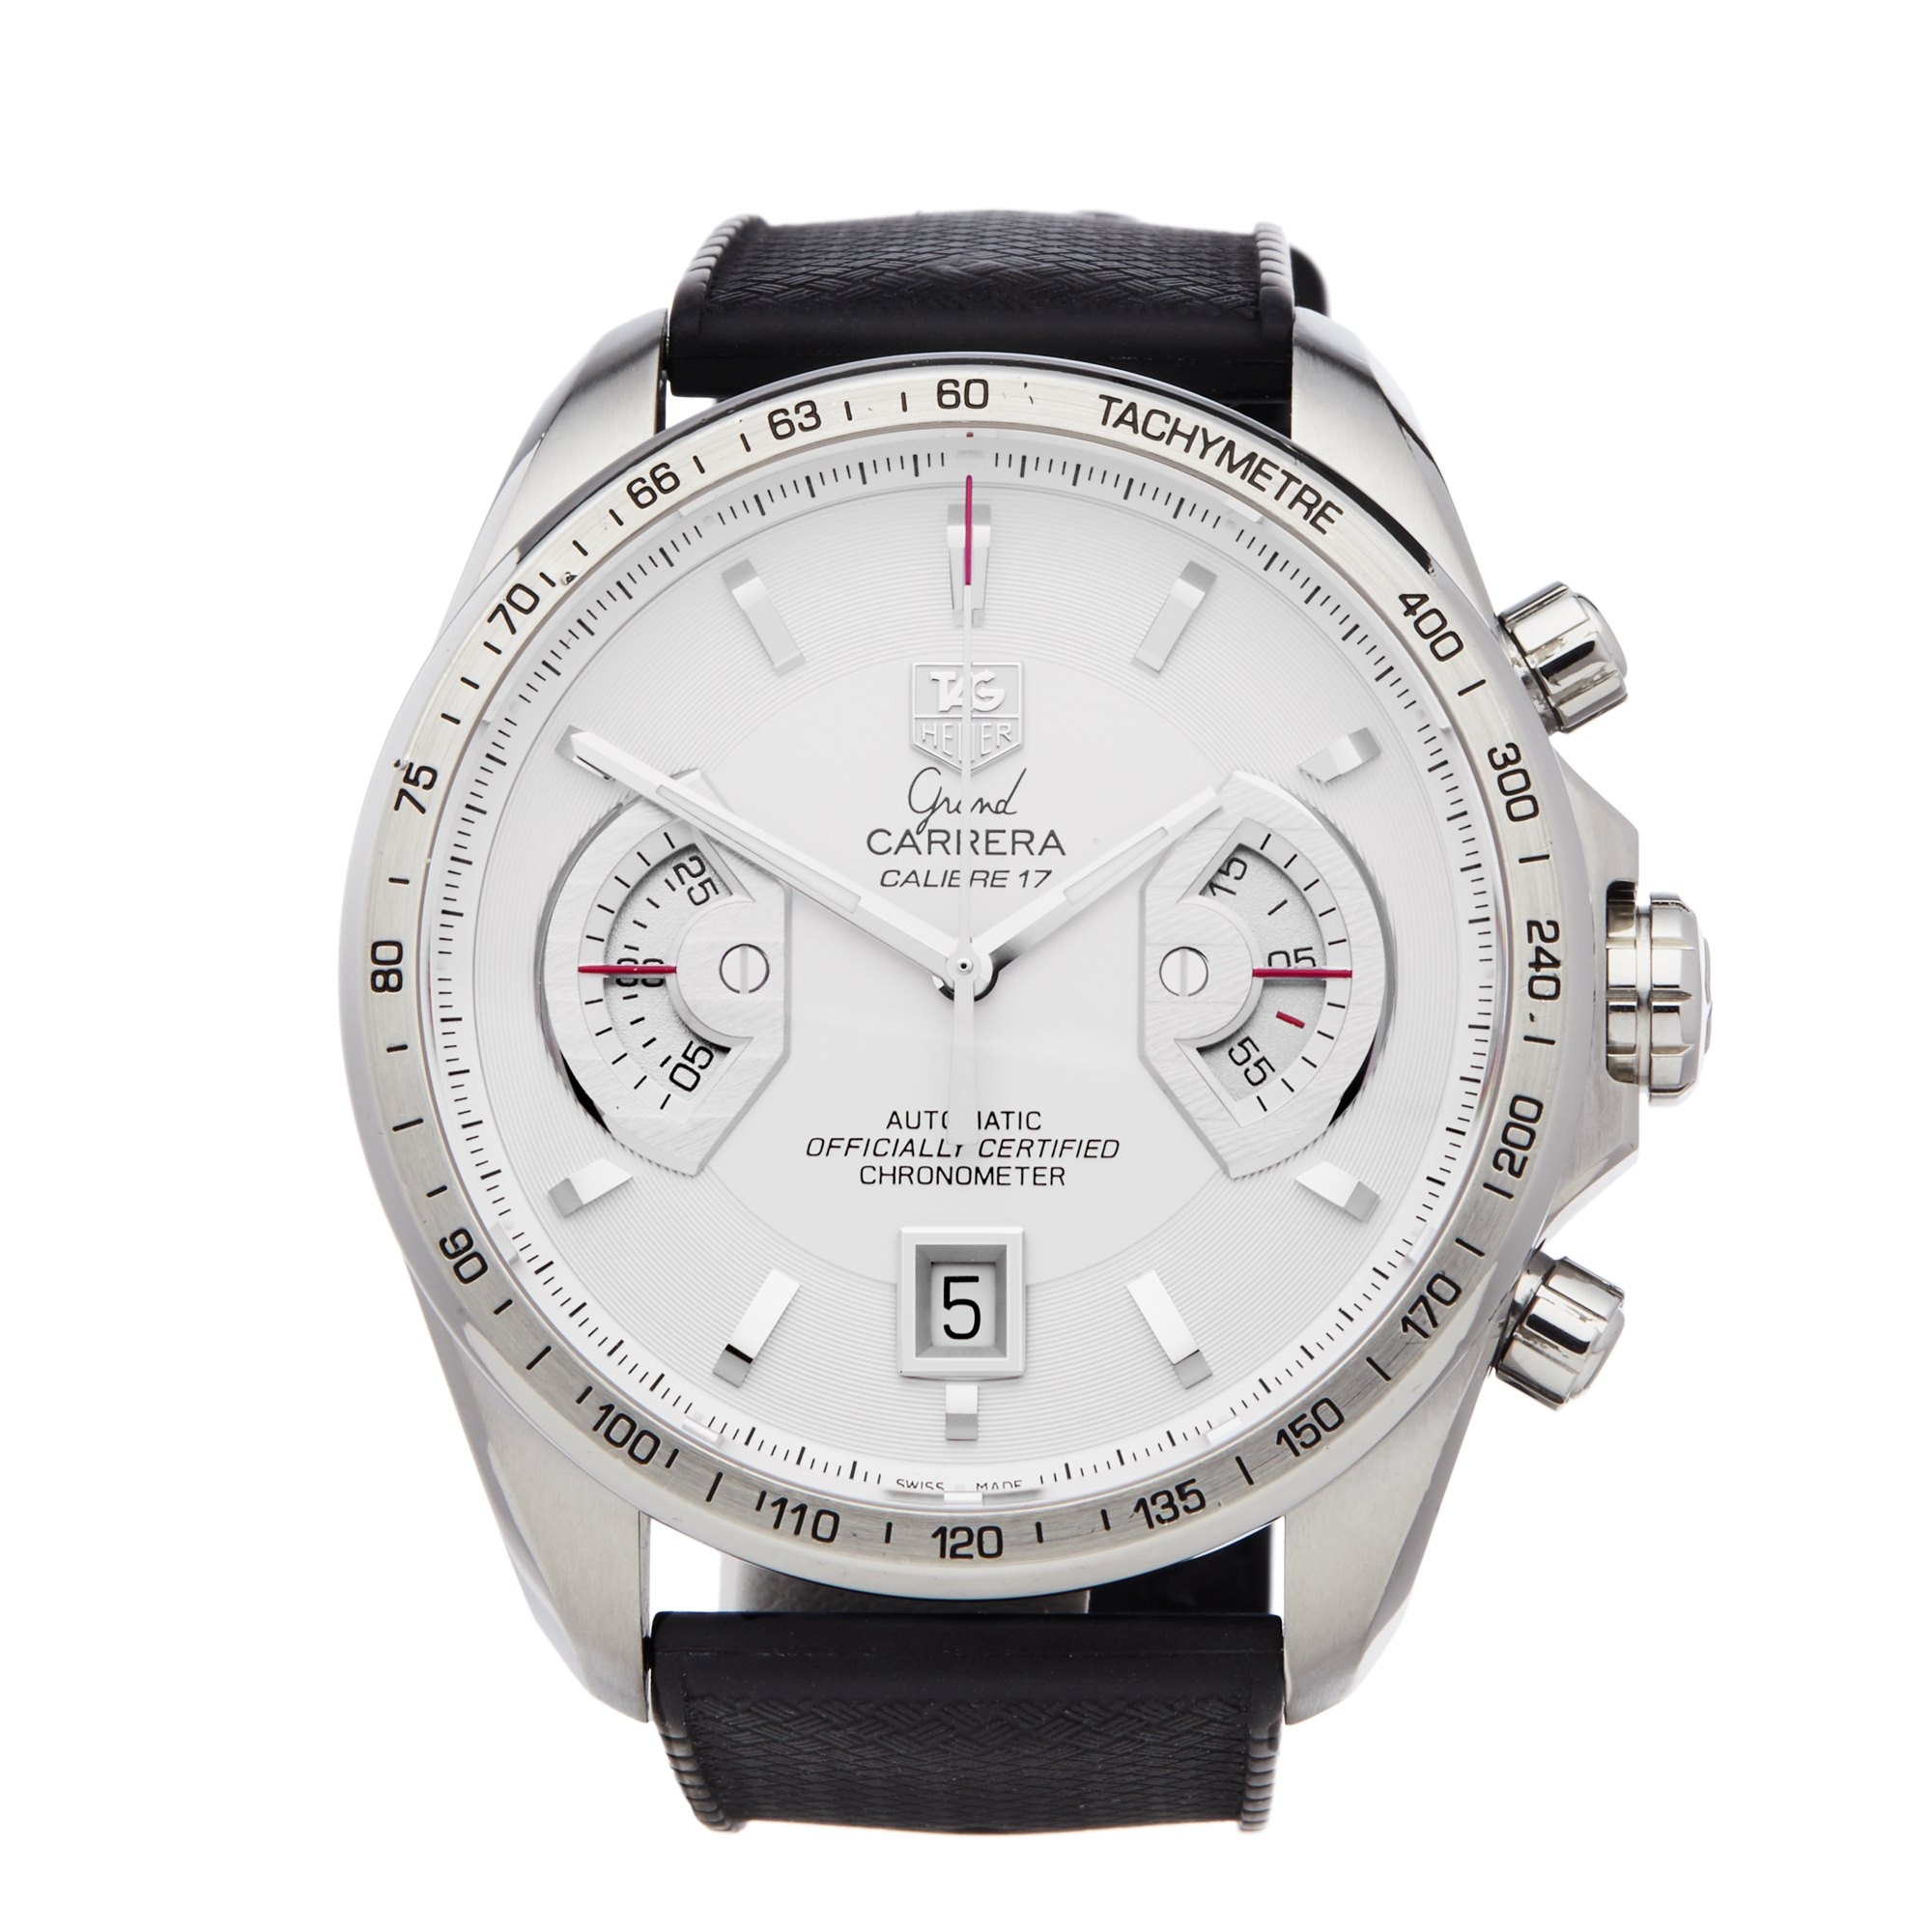 Tag Heuer Grand Carrera Chronograph Roestvrij Staal CAV511B